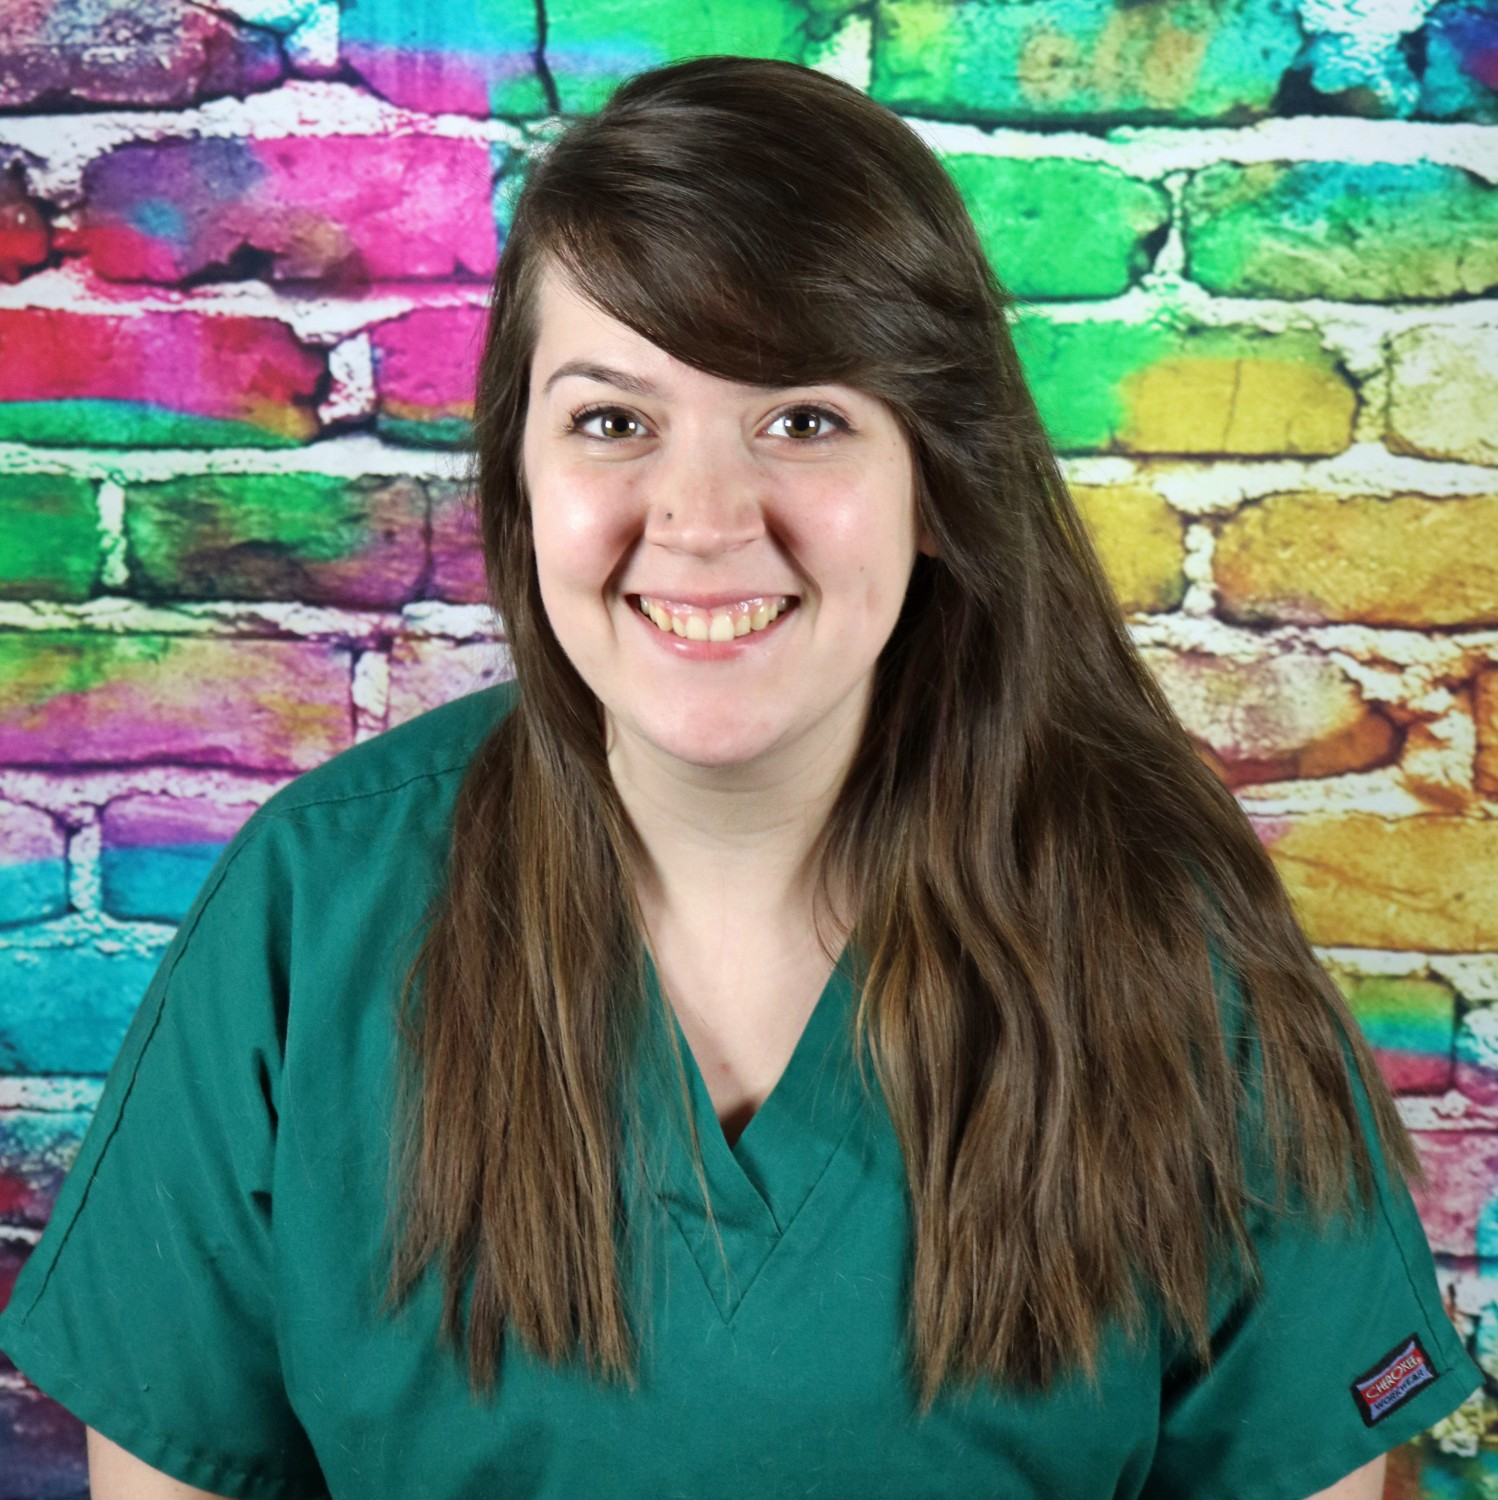 Heidi Stevenson - Vet Tech Student - Approved Veterinary Assistant - Manchester Veterinary Clinic - CT